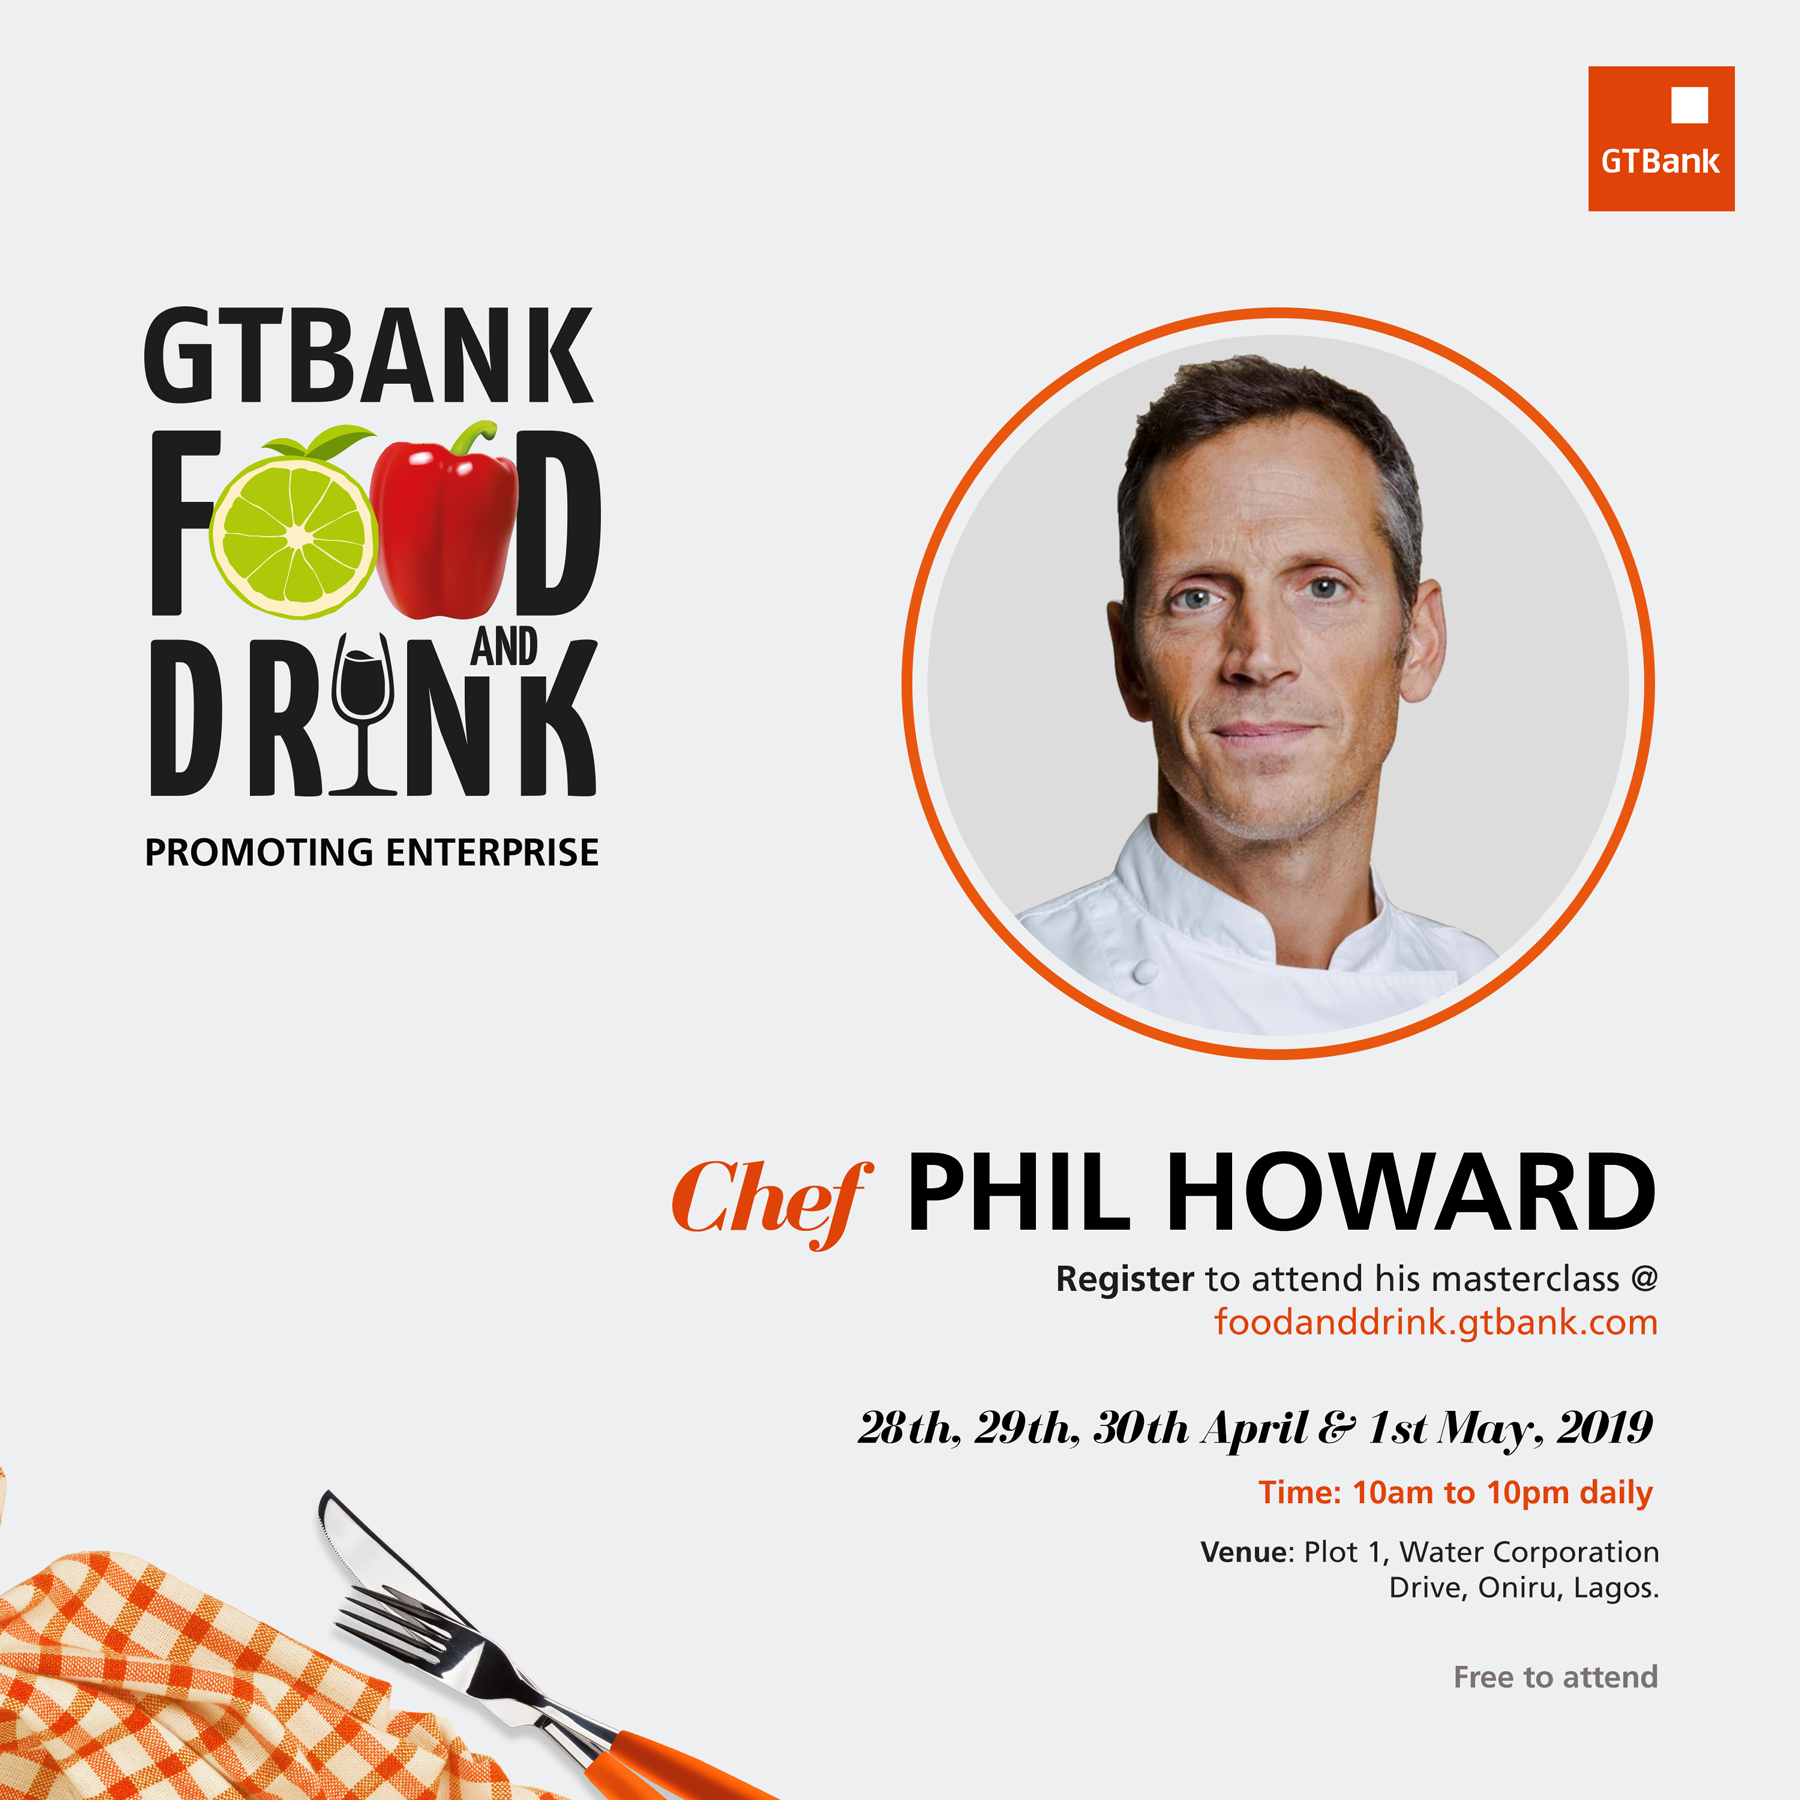 Award-winning Culinary Experts on the Line-up for the GTBank Food and Drink Festival Masterclass